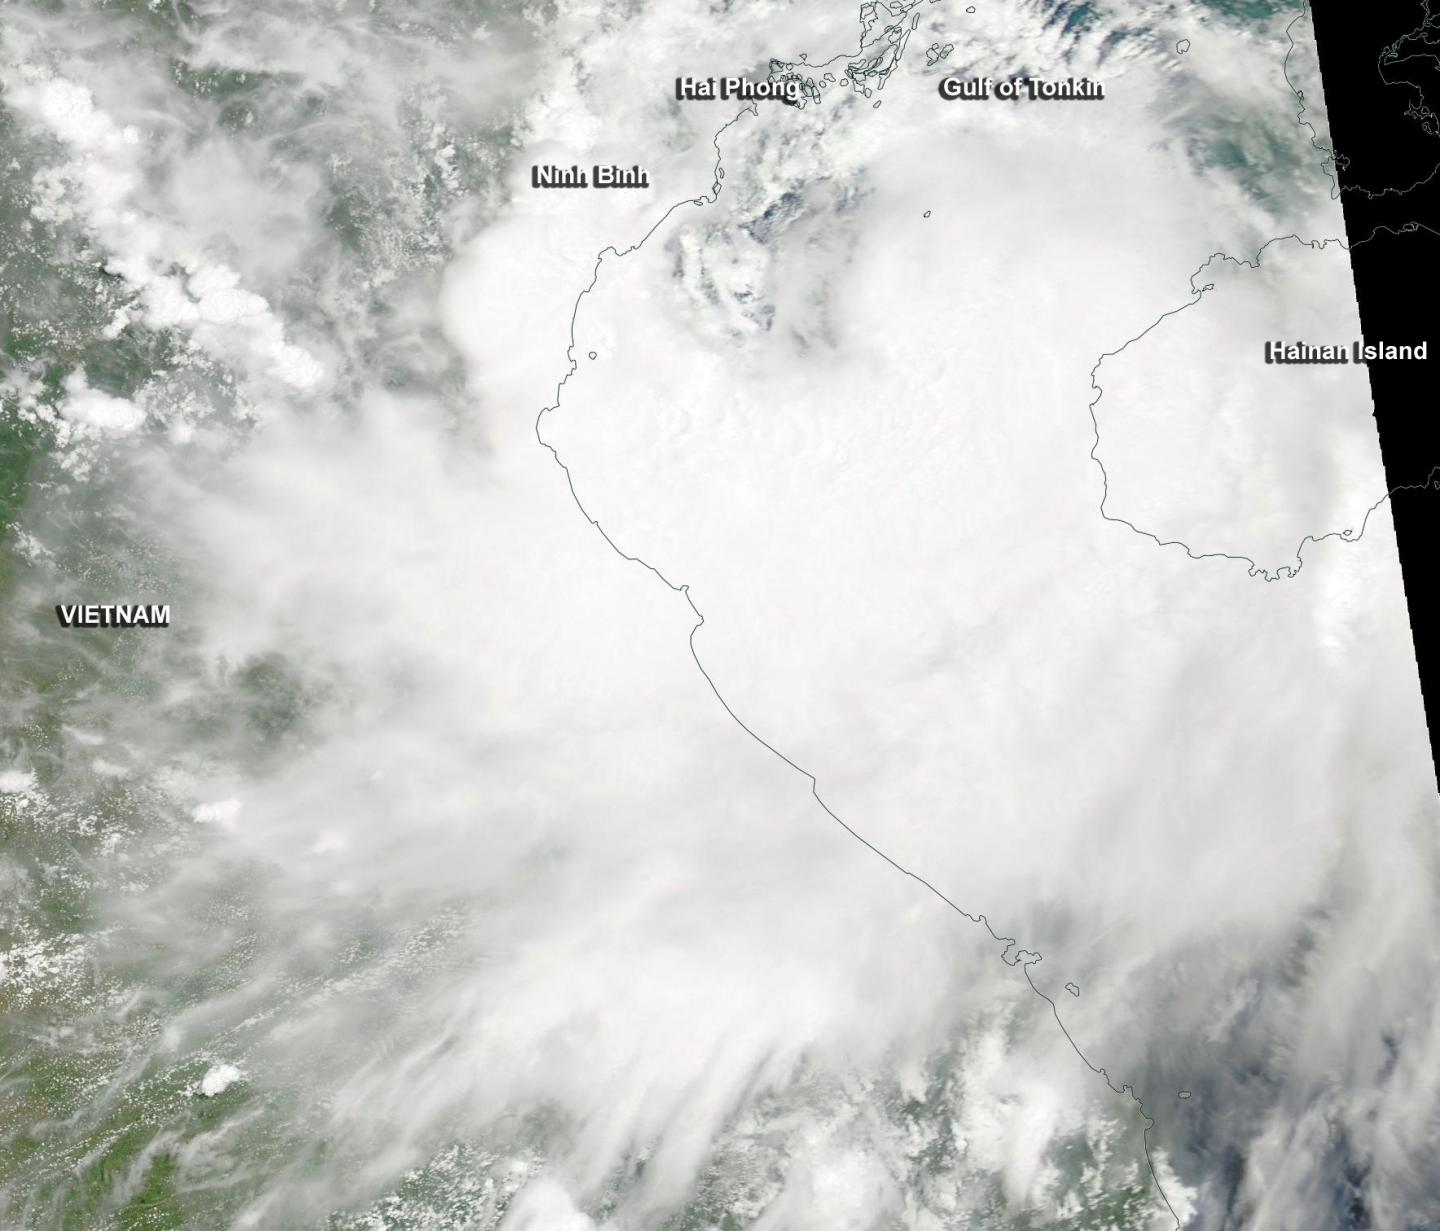 Tropical Storm Mirinae was moving through the Gulf of Tonkin early on July 27 when NASA's Aqua satellite passed overhead.